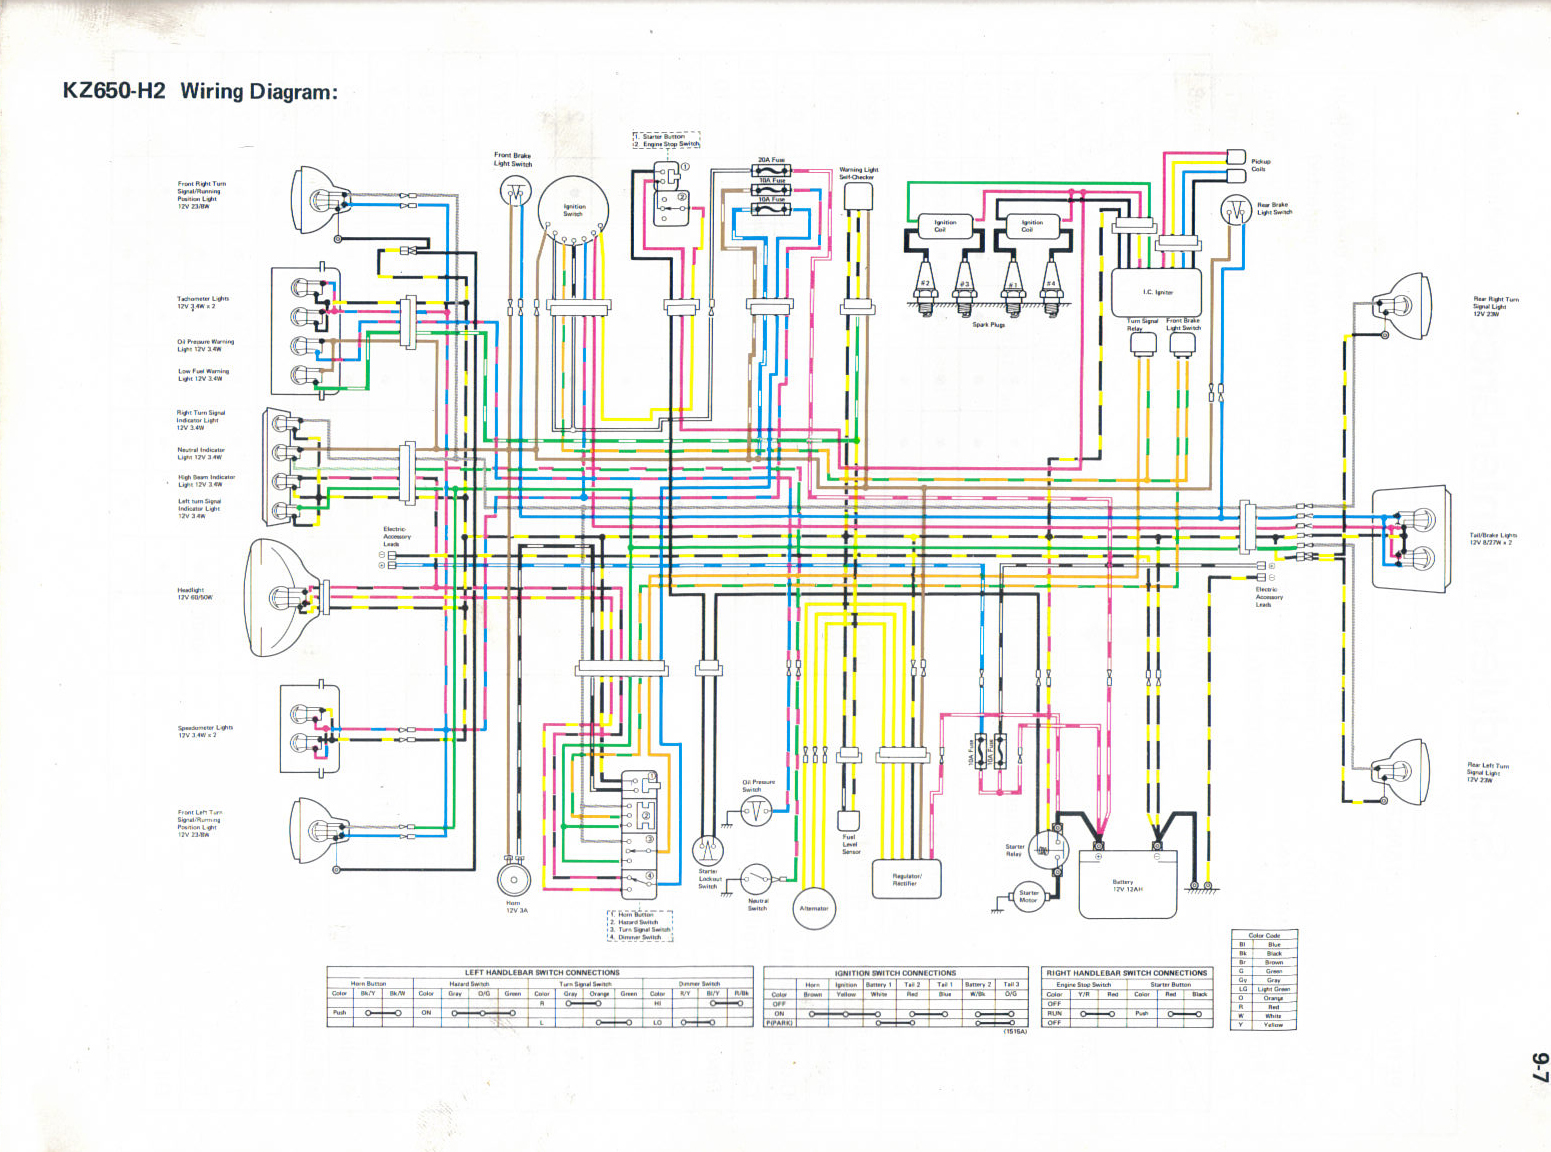 Kz650info Wiring Diagrams Lead Motor Diagram Free Download Schematic Kz650 H2